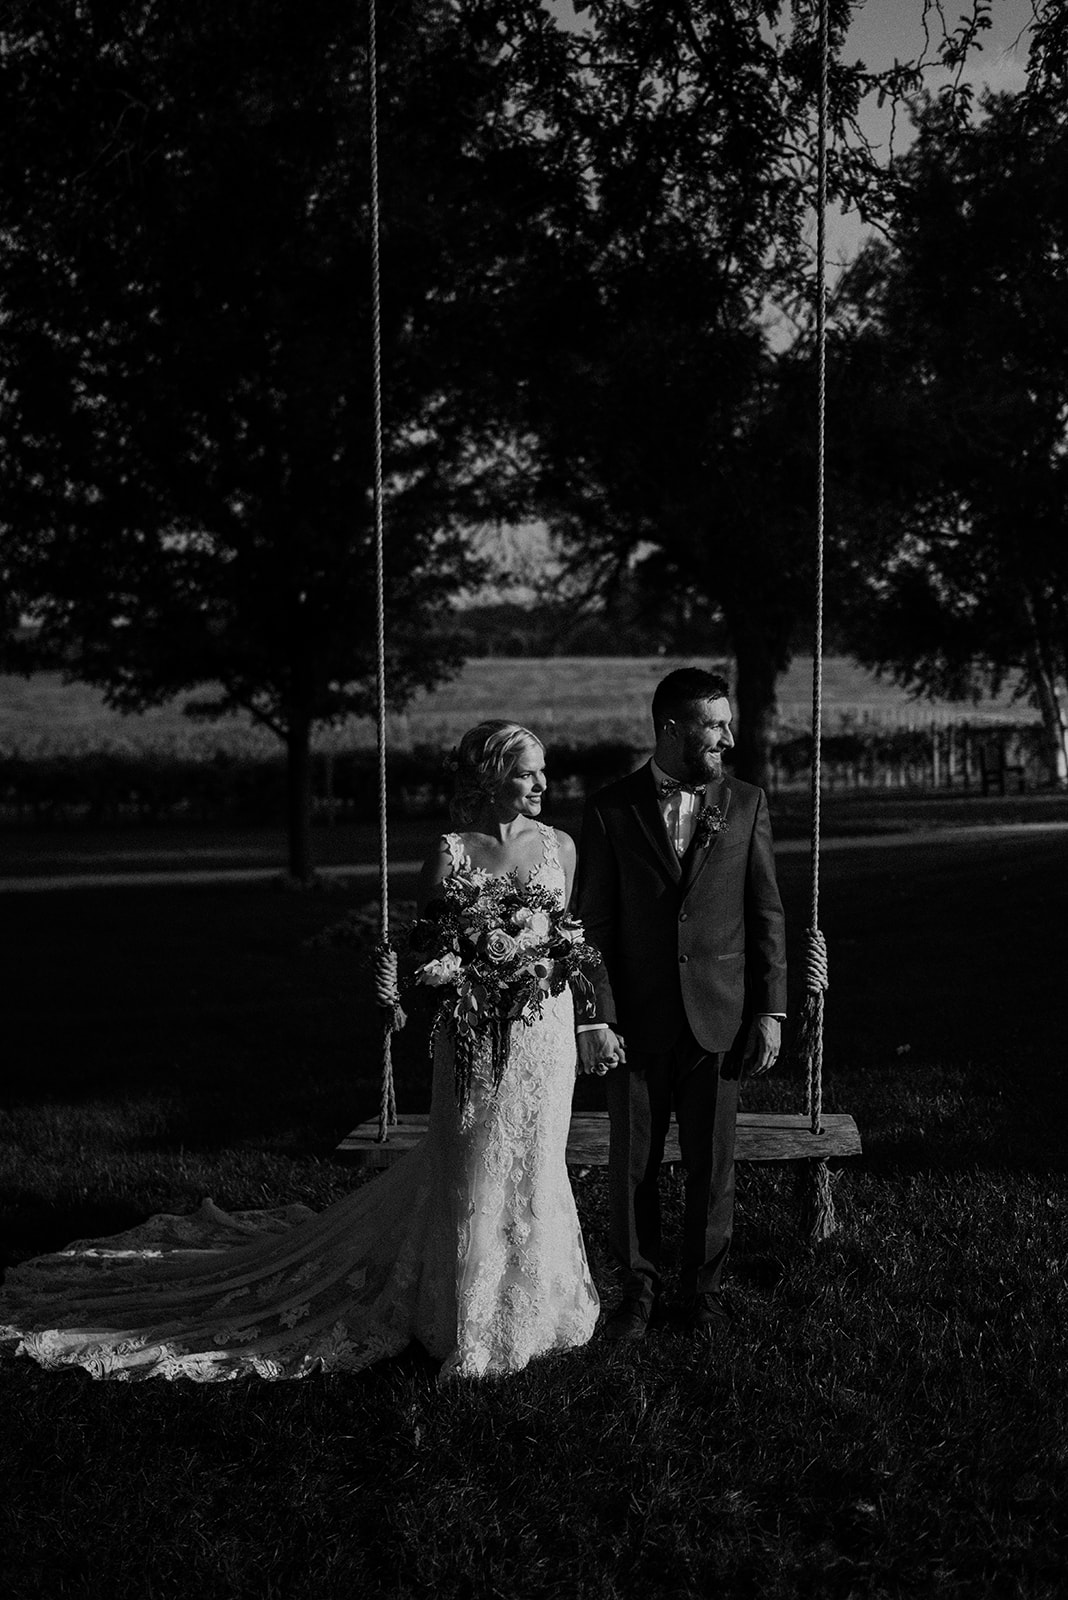 overthevineswisconsinwedding_0983.jpg